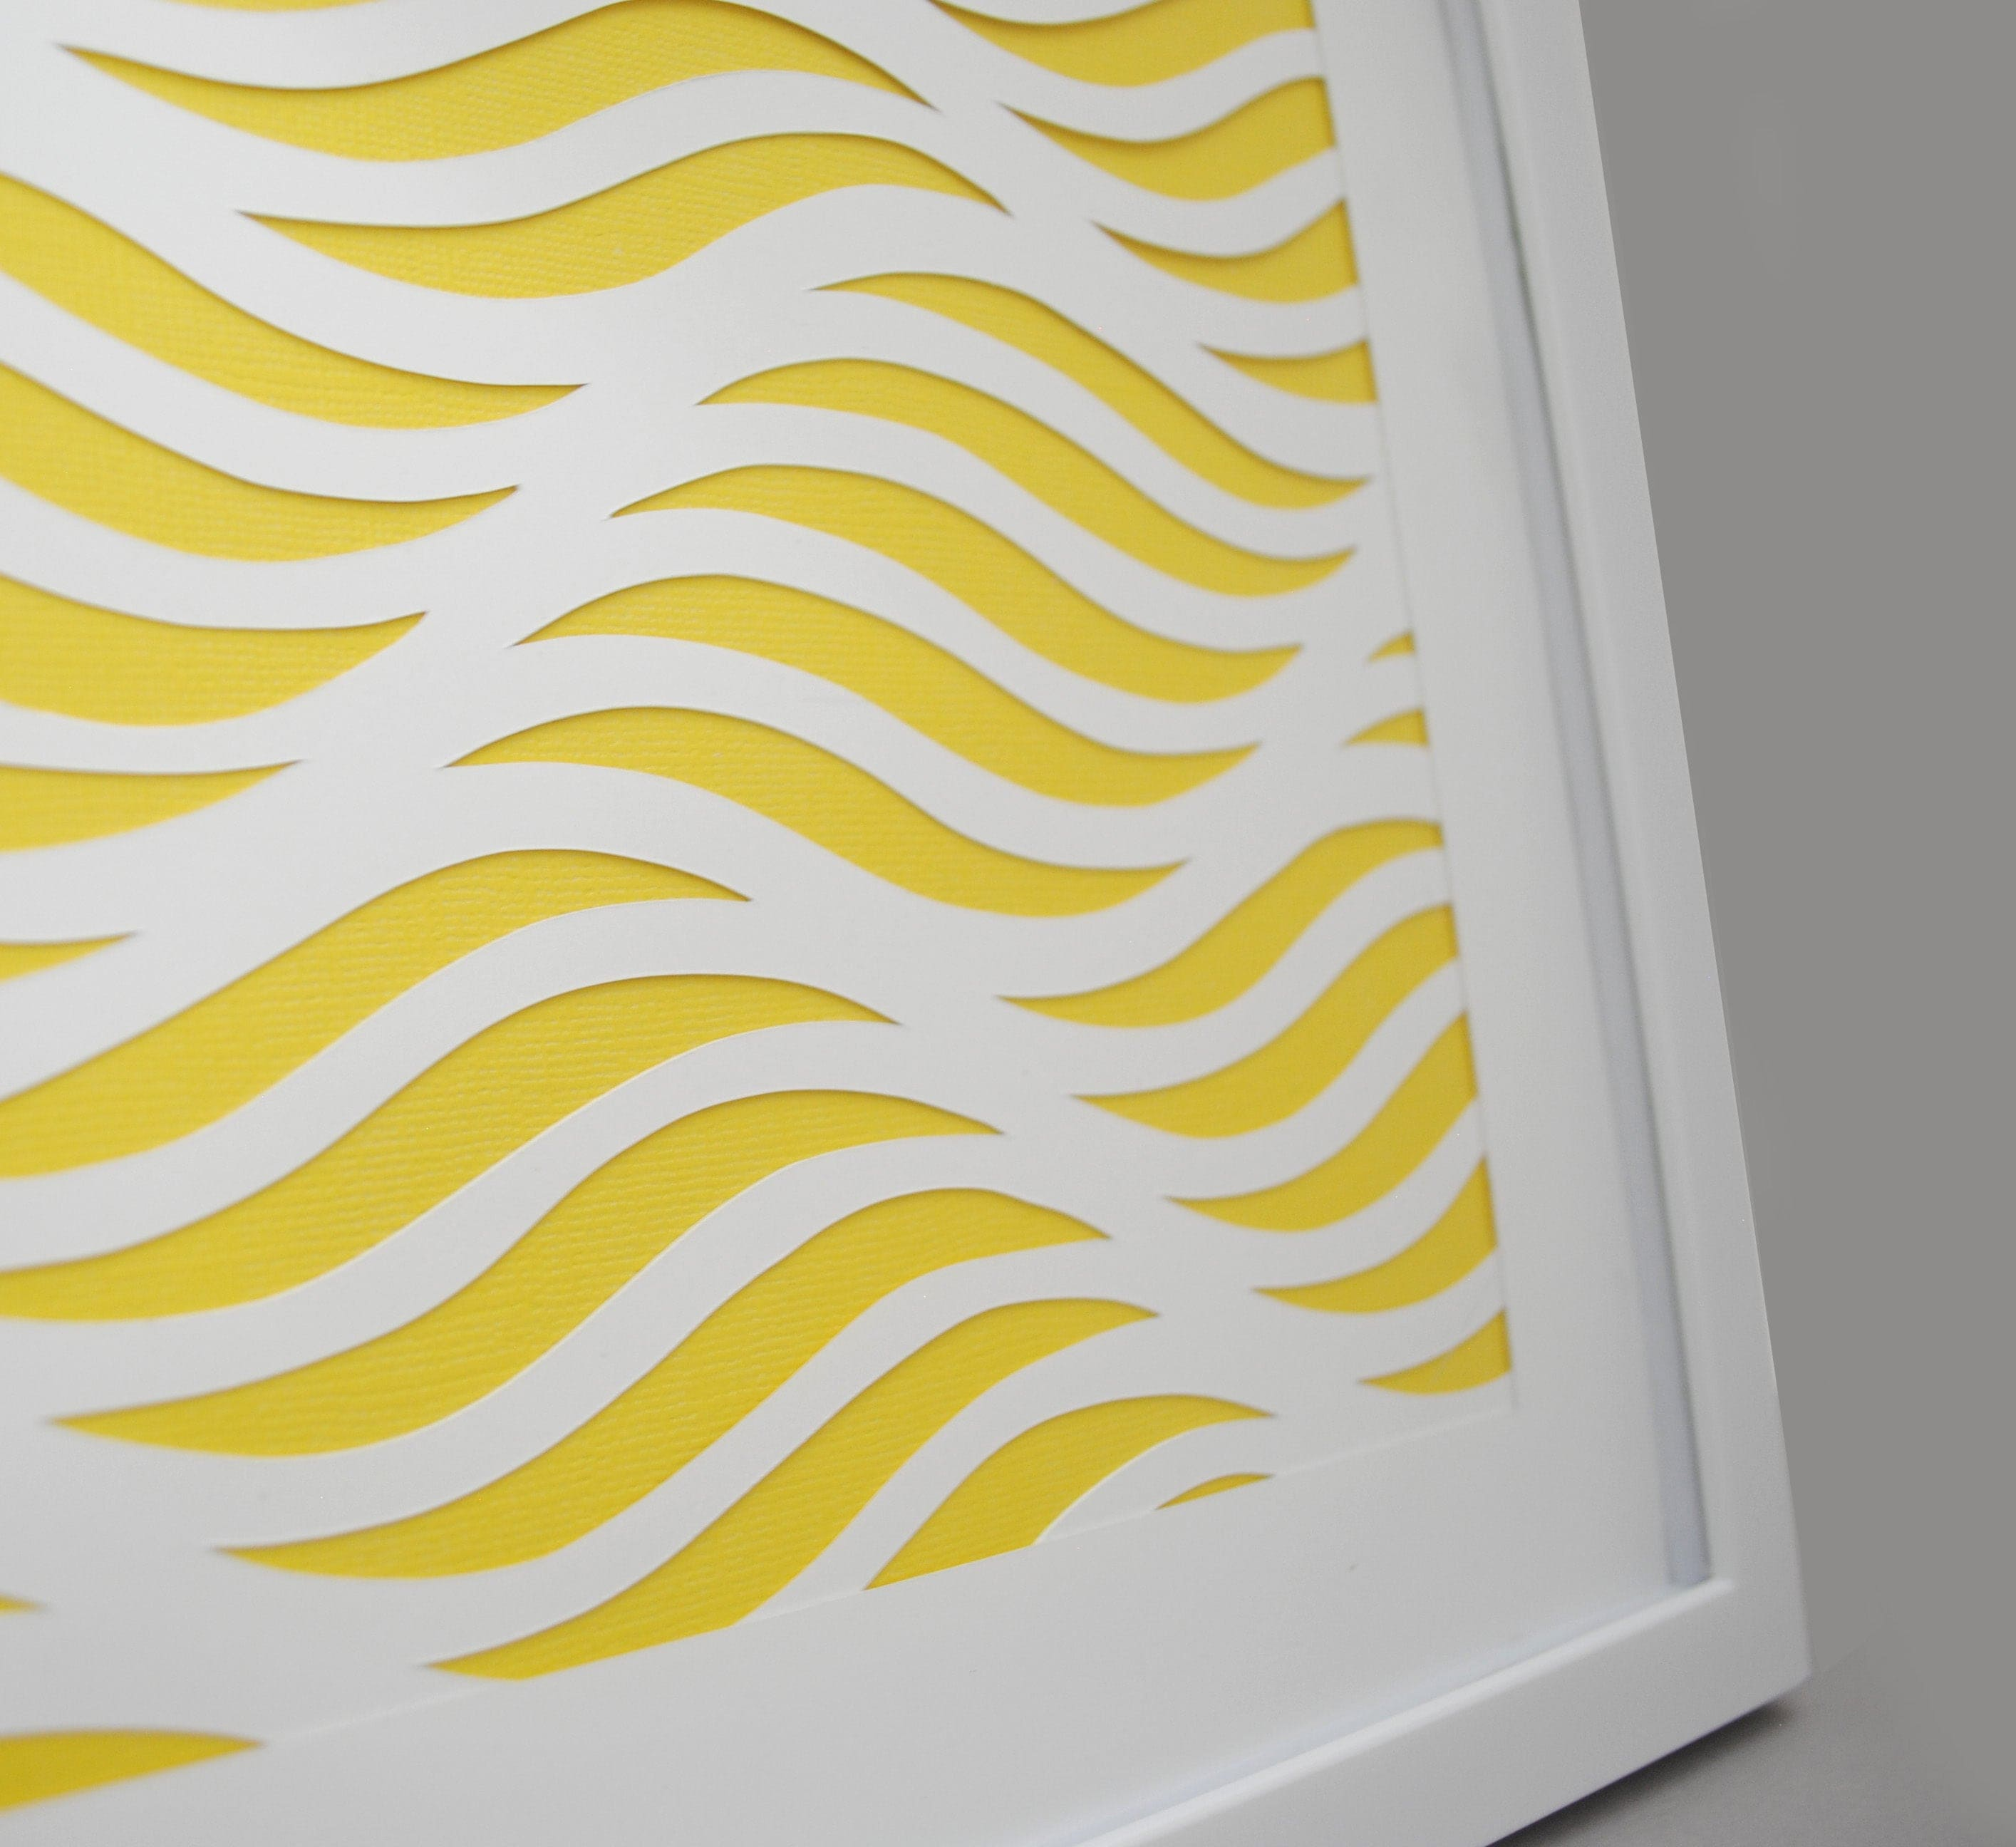 geometric waves- PAPER CUTTING - handmade art, Paper cut art, waves ...